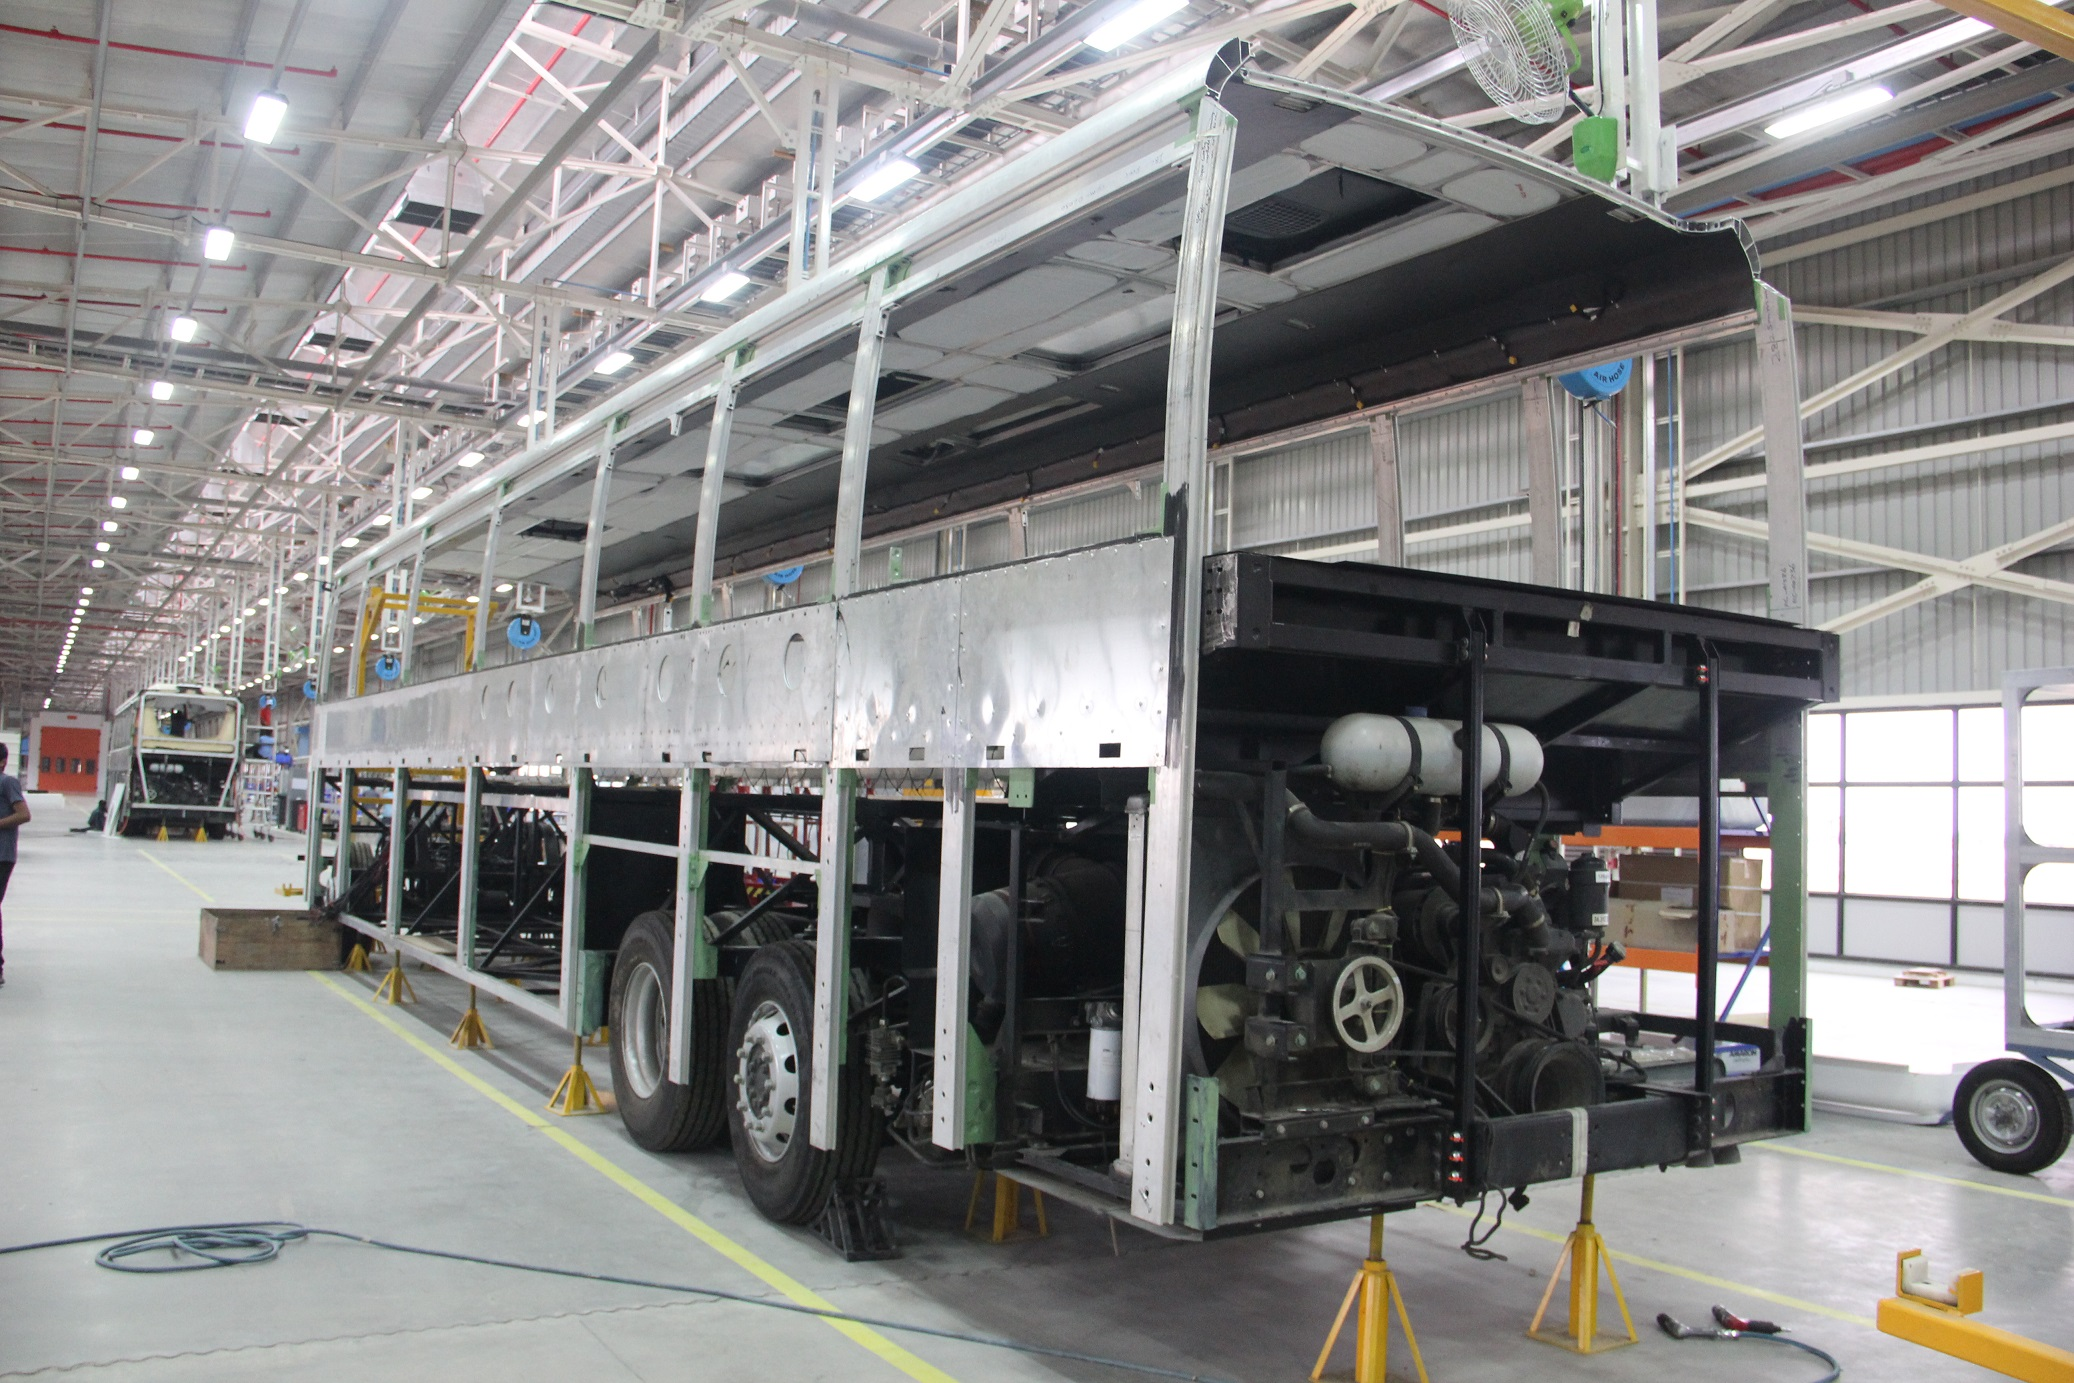 Daimler waves its next phase of growth by inaugurating its bus facility - Auto Components India